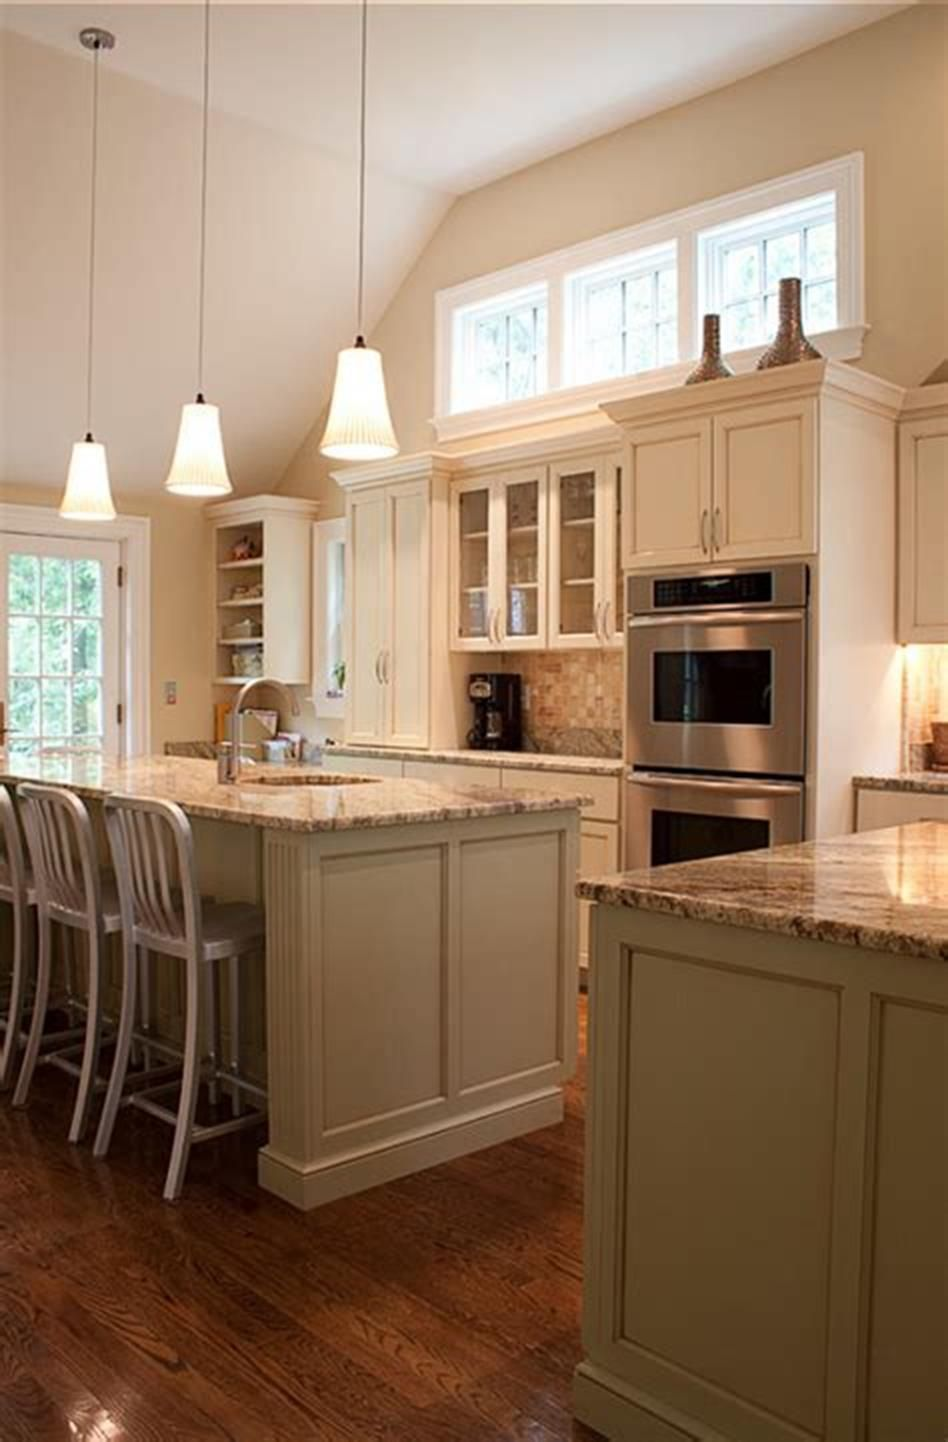 46 most popular kitchen color schemes trends 2019 popular kitchen colors home decor kitchen on kitchen paint colors id=75018